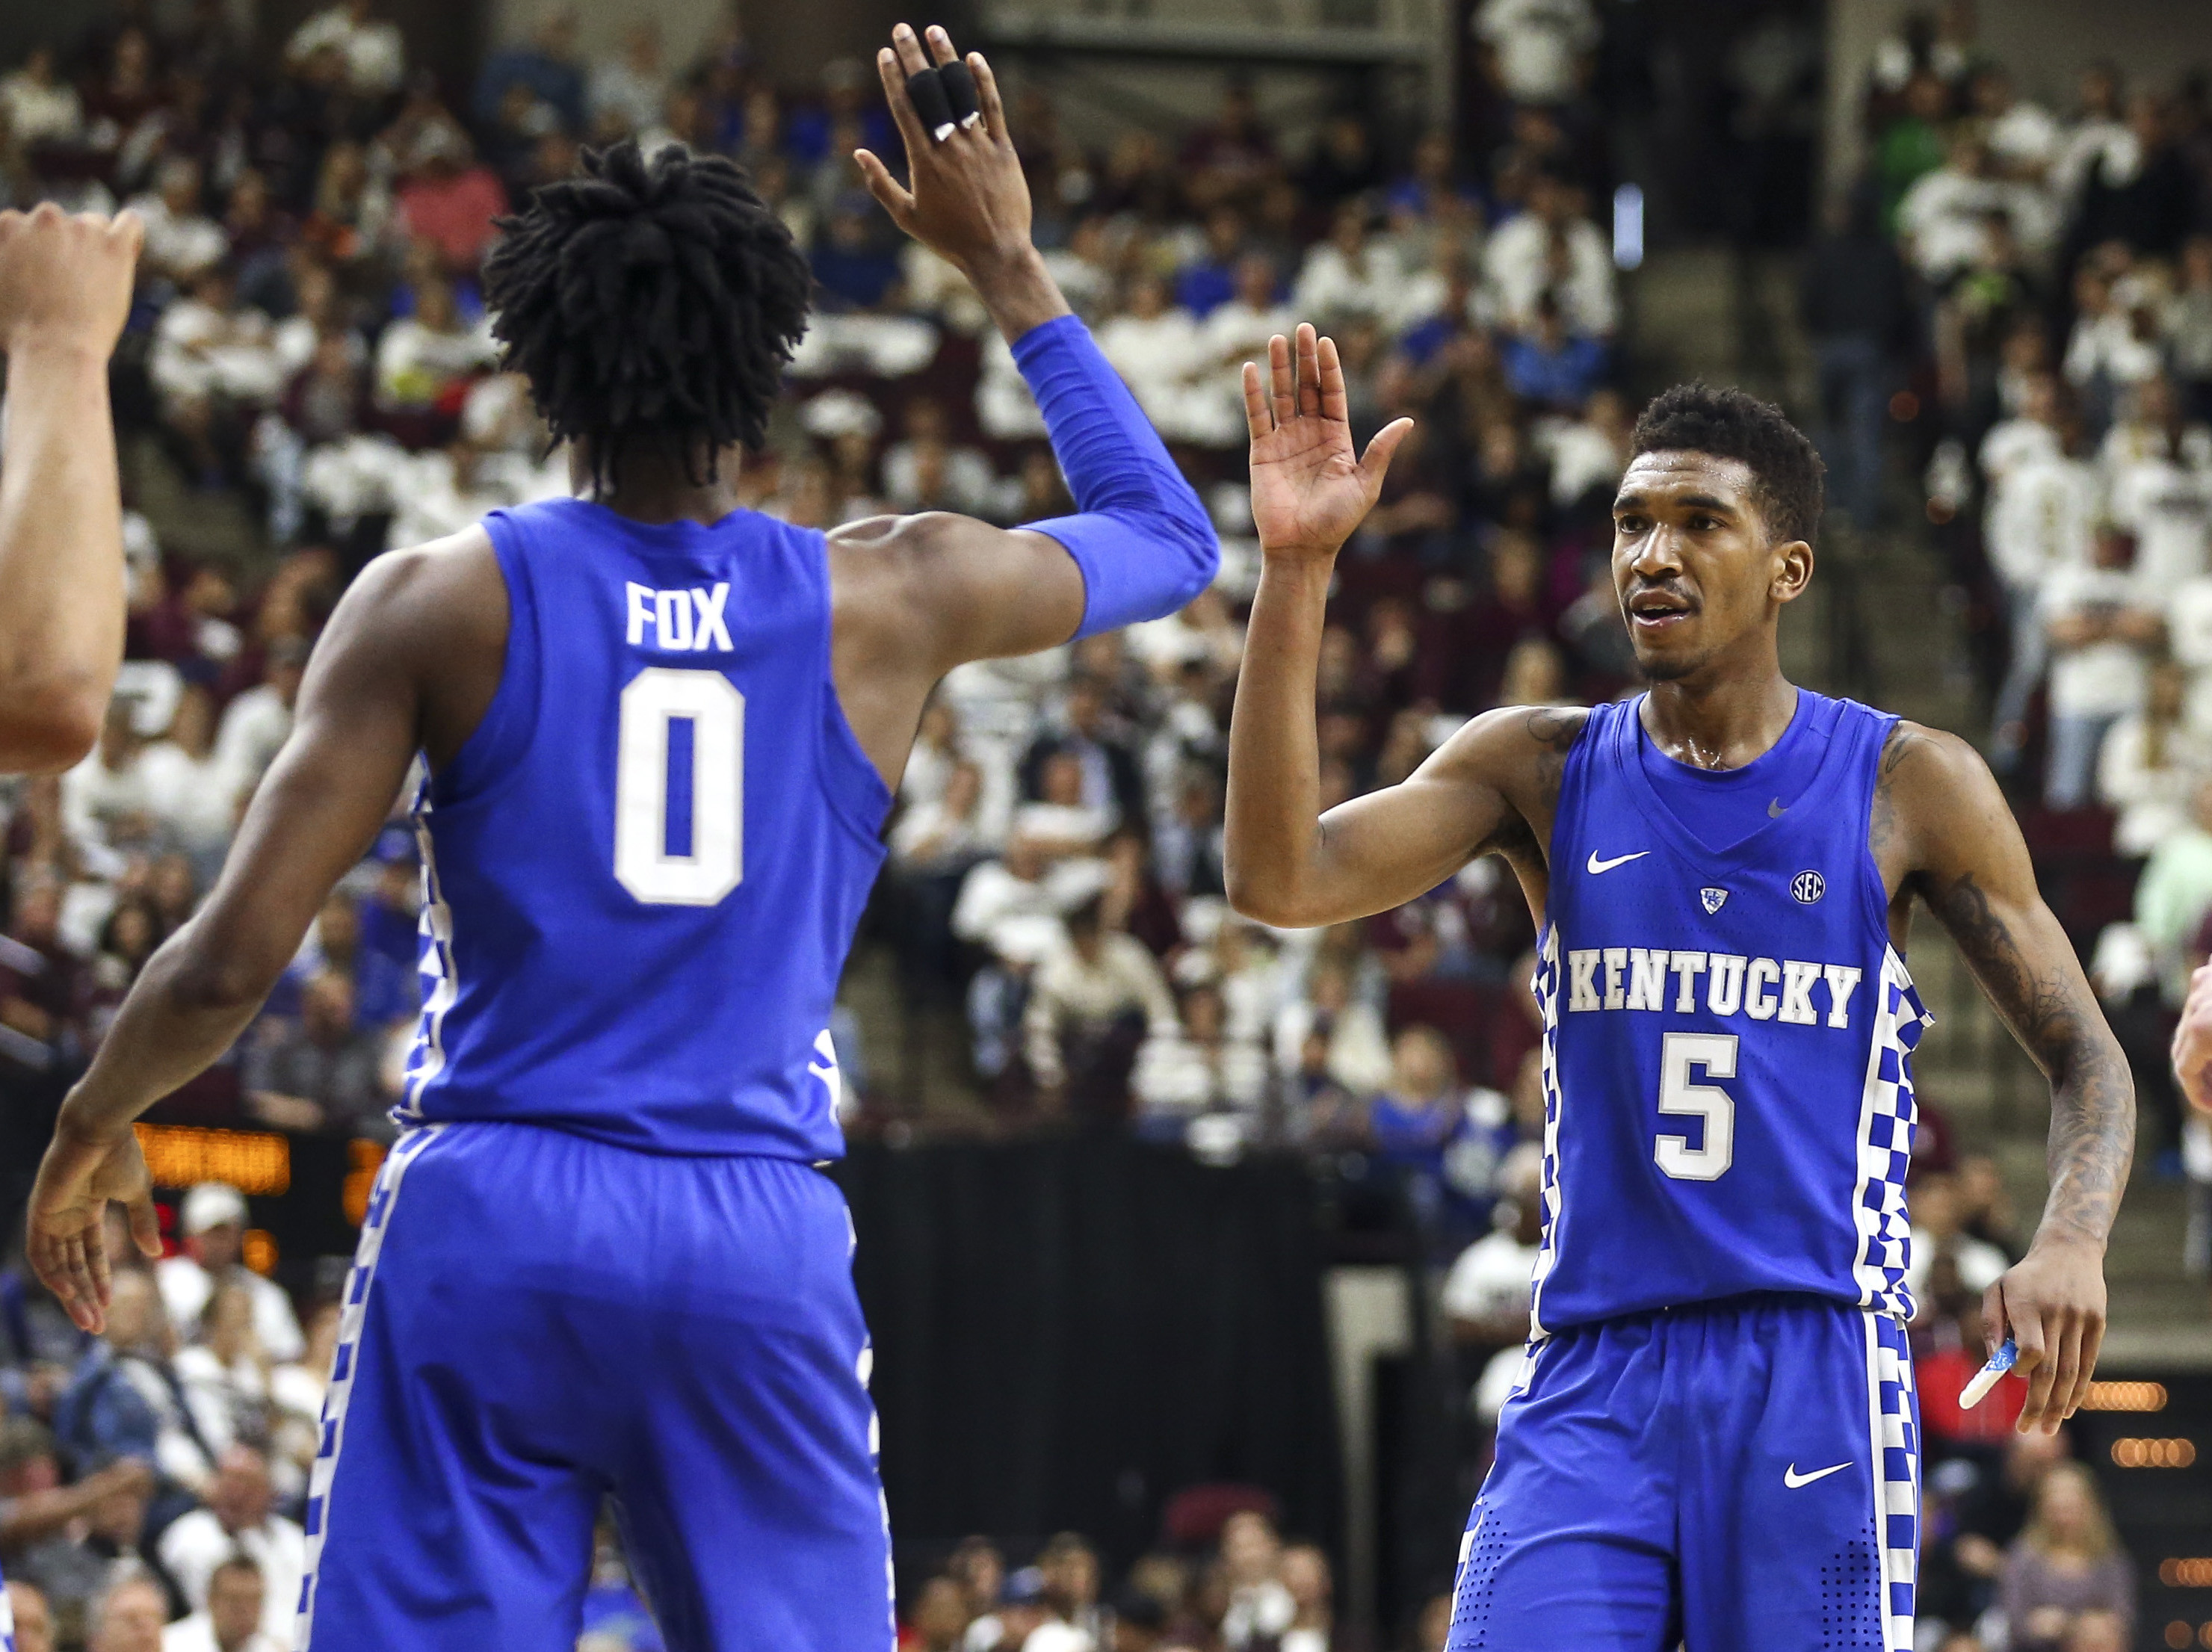 brand new f4790 3ec6f Kentucky Basketball: Ranking The Top Five Wildcats Players ...